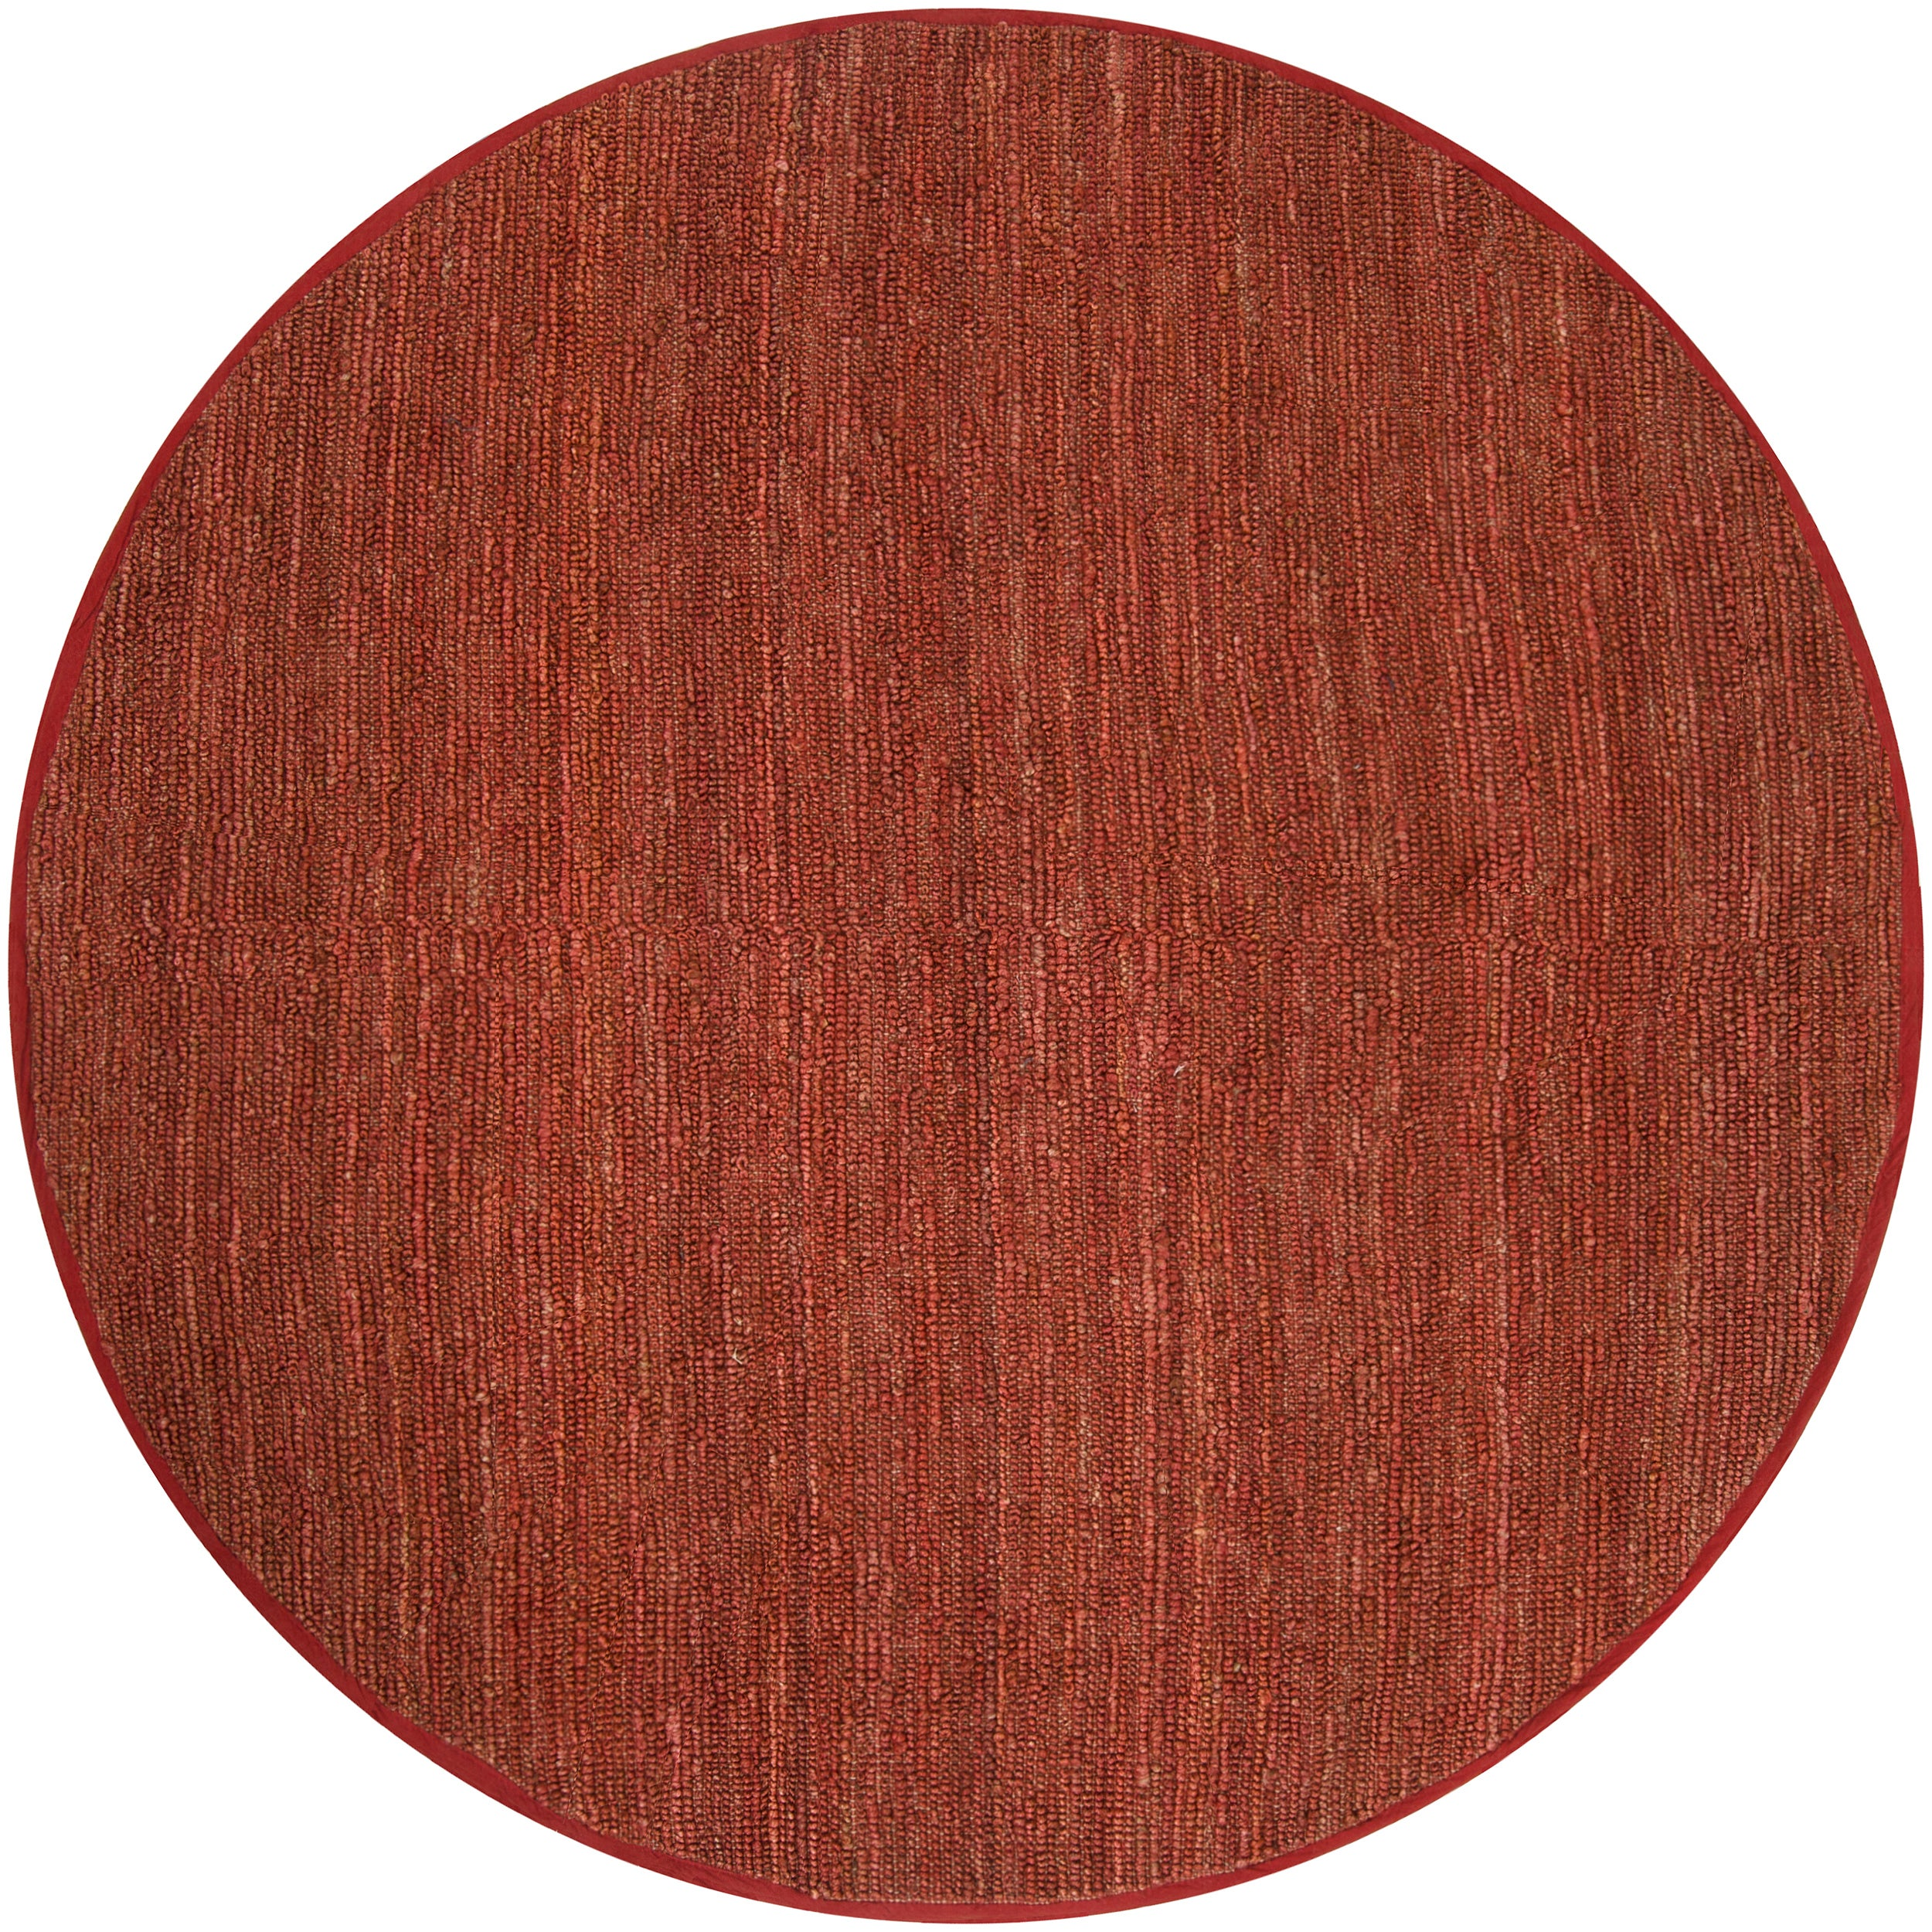 Hand-woven Red Oriole Natural Fiber Jute Rug (8' Round)